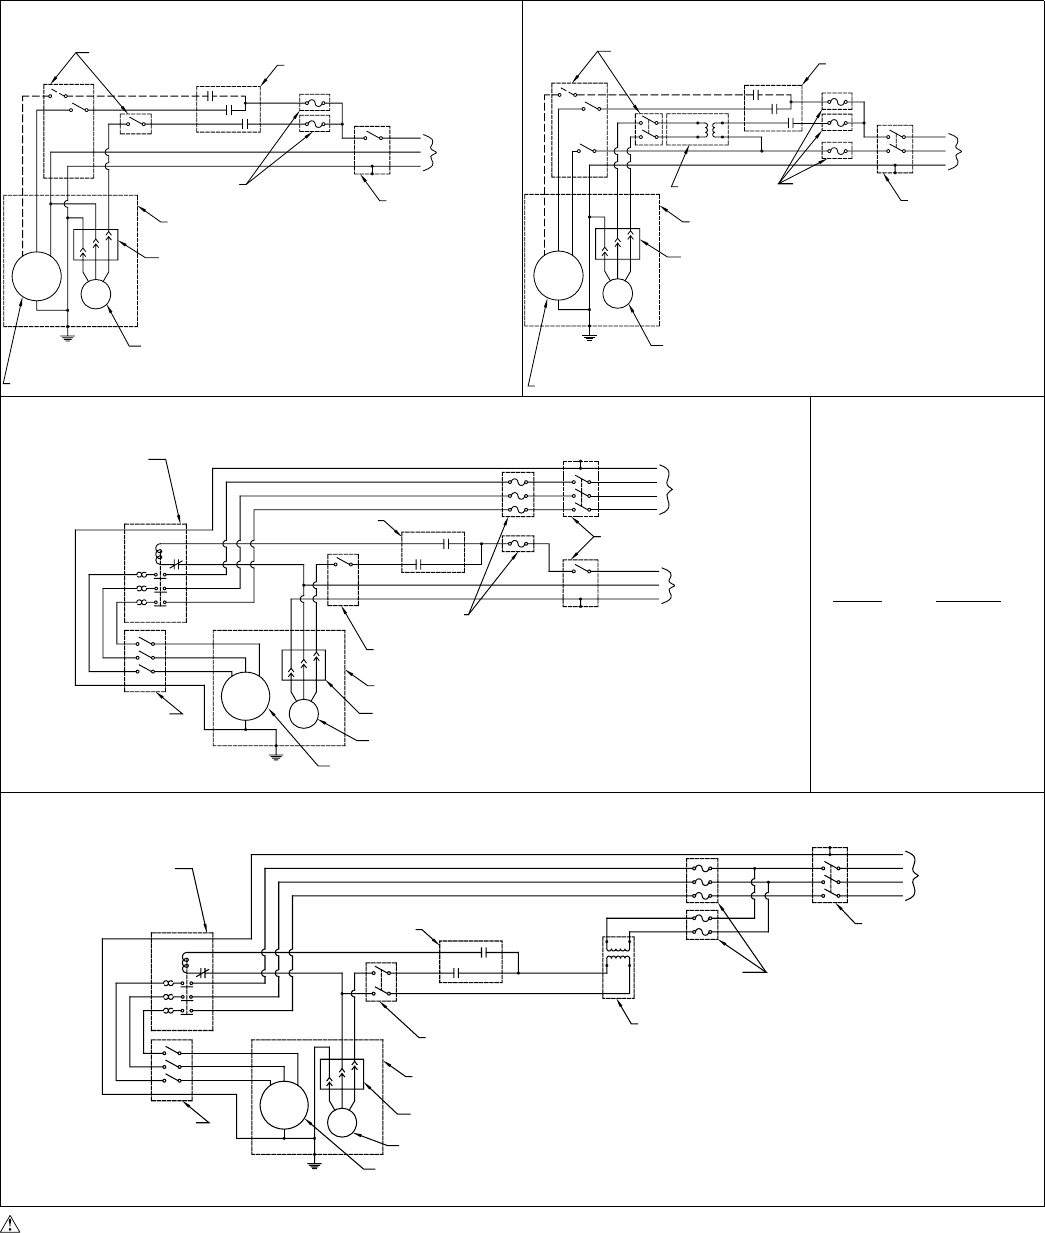 110526 5. Typical Electrical Wiring Diagrams